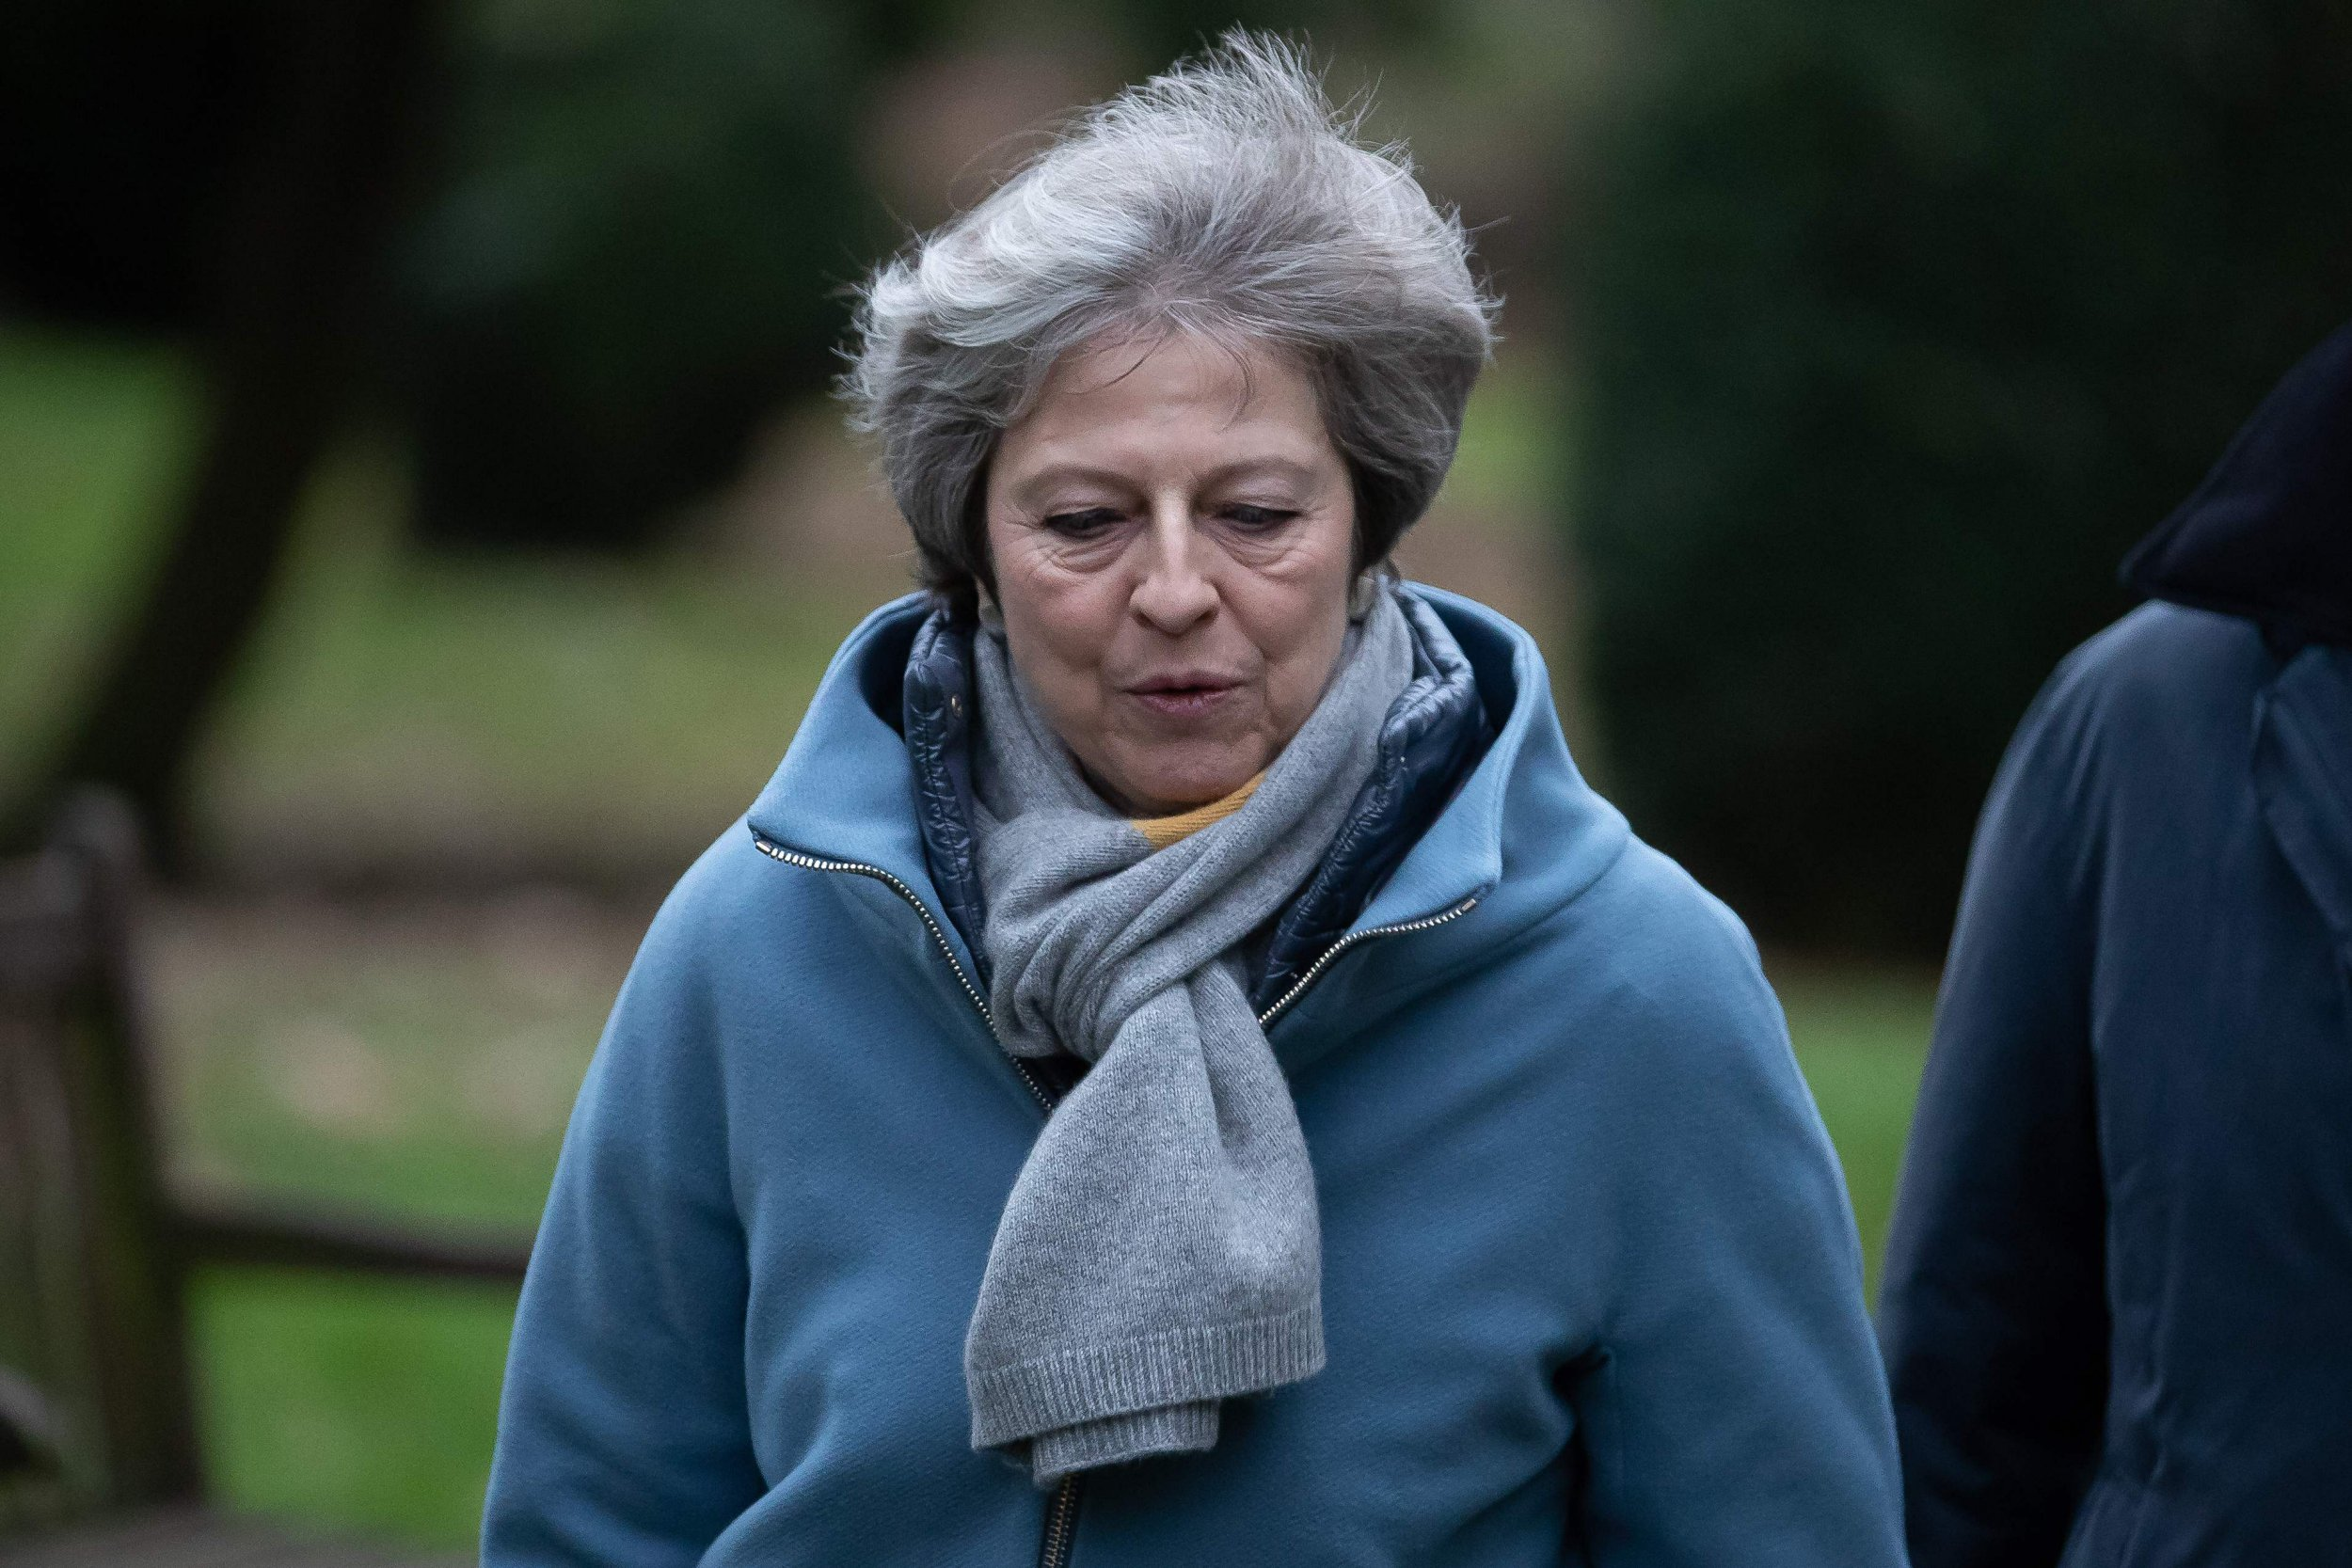 """Britain's Prime Minister Theresa May leaves after attending a church service, near her Maidenhead constituency, west of London on January 13, 2019. - British Prime Minister Theresa May on Sunday warned MPs preparing to vote down her EU divorce deal that failing to deliver Brexit would be a """"catastrophic and unforgivable breach of trust in our democracy"""". (Photo by Daniel LEAL-OLIVAS / AFP)DANIEL LEAL-OLIVAS/AFP/Getty Images"""